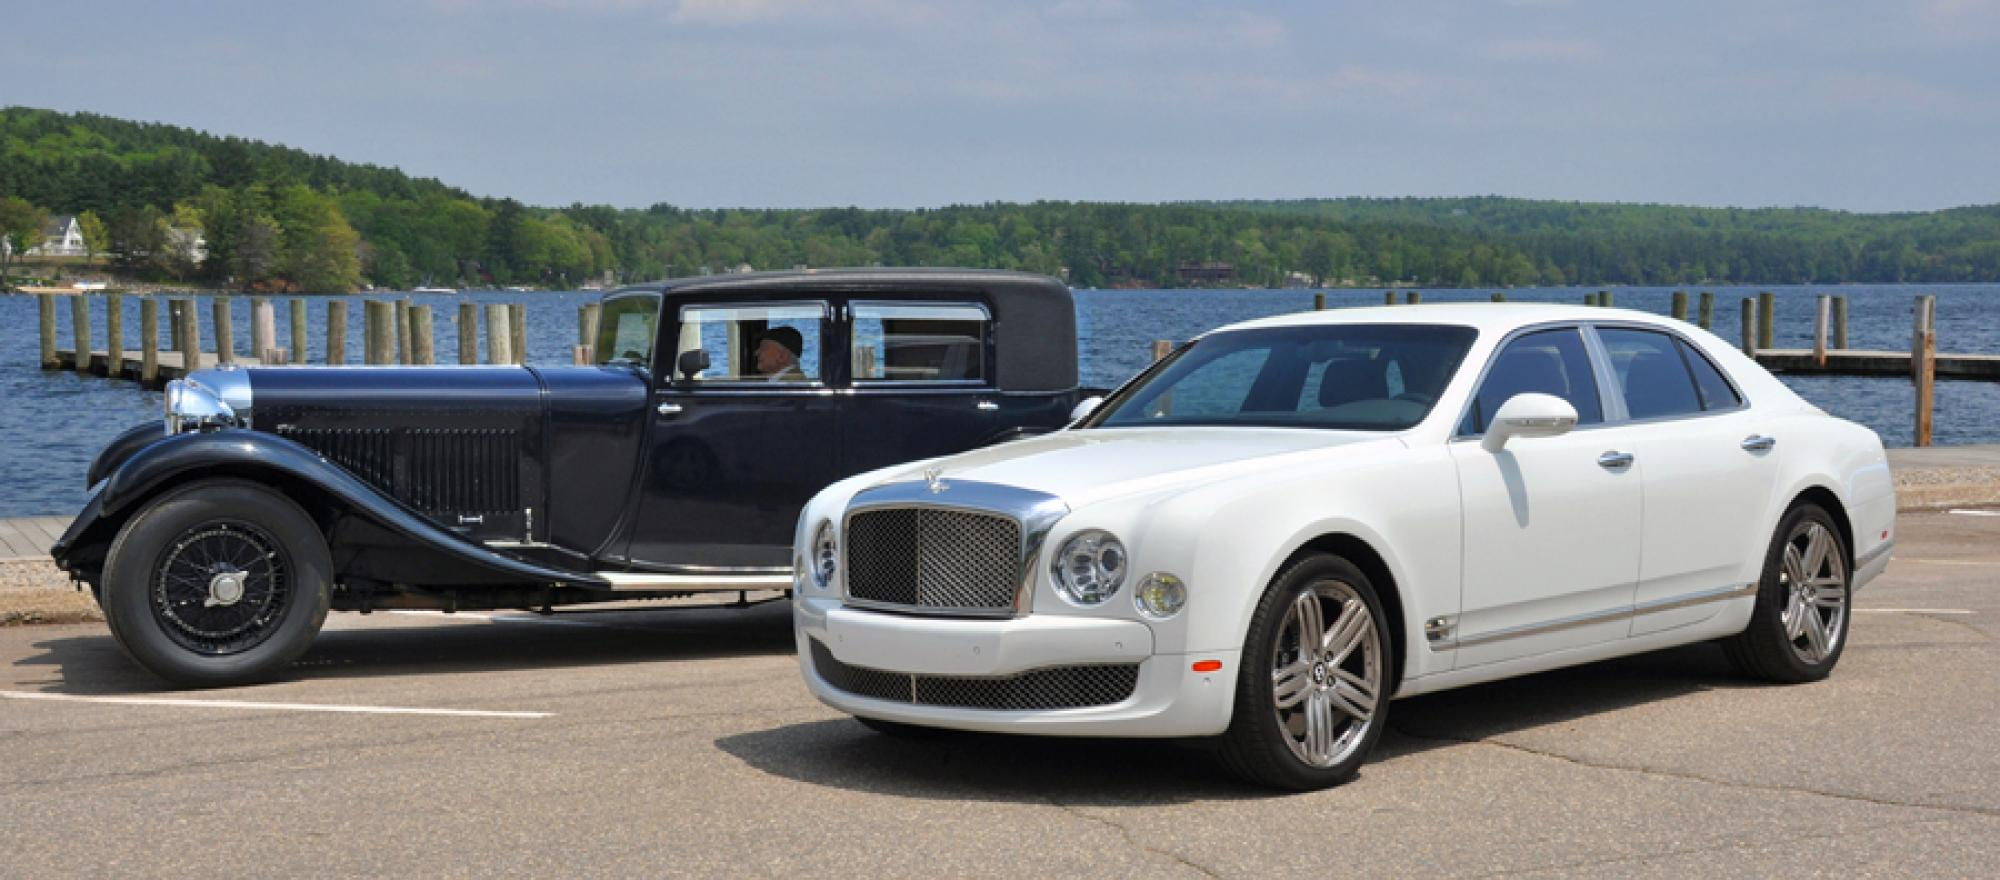 engines is new news three specs price how release carwow and mulsanne driving a date bentley much